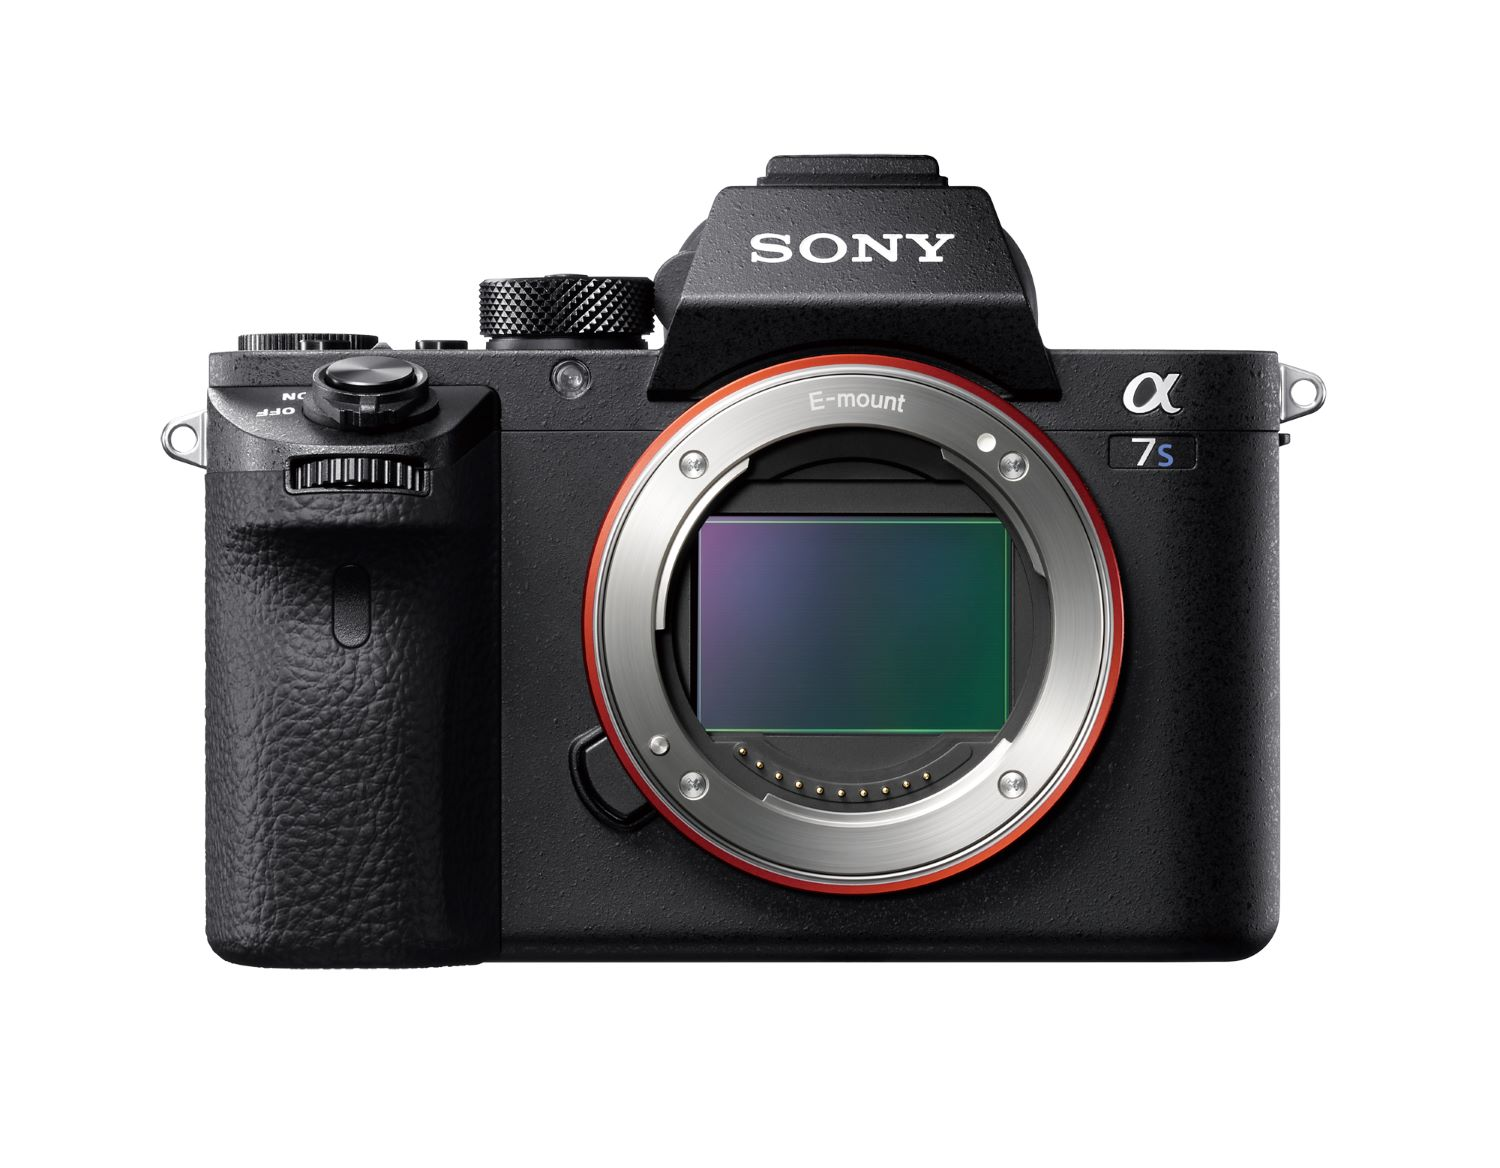 https://i2.wp.com/digital-photography-school.com/wp-content/uploads/2020/05/Sony-a7S-II-successor-rumor-1.jpg?ssl=1